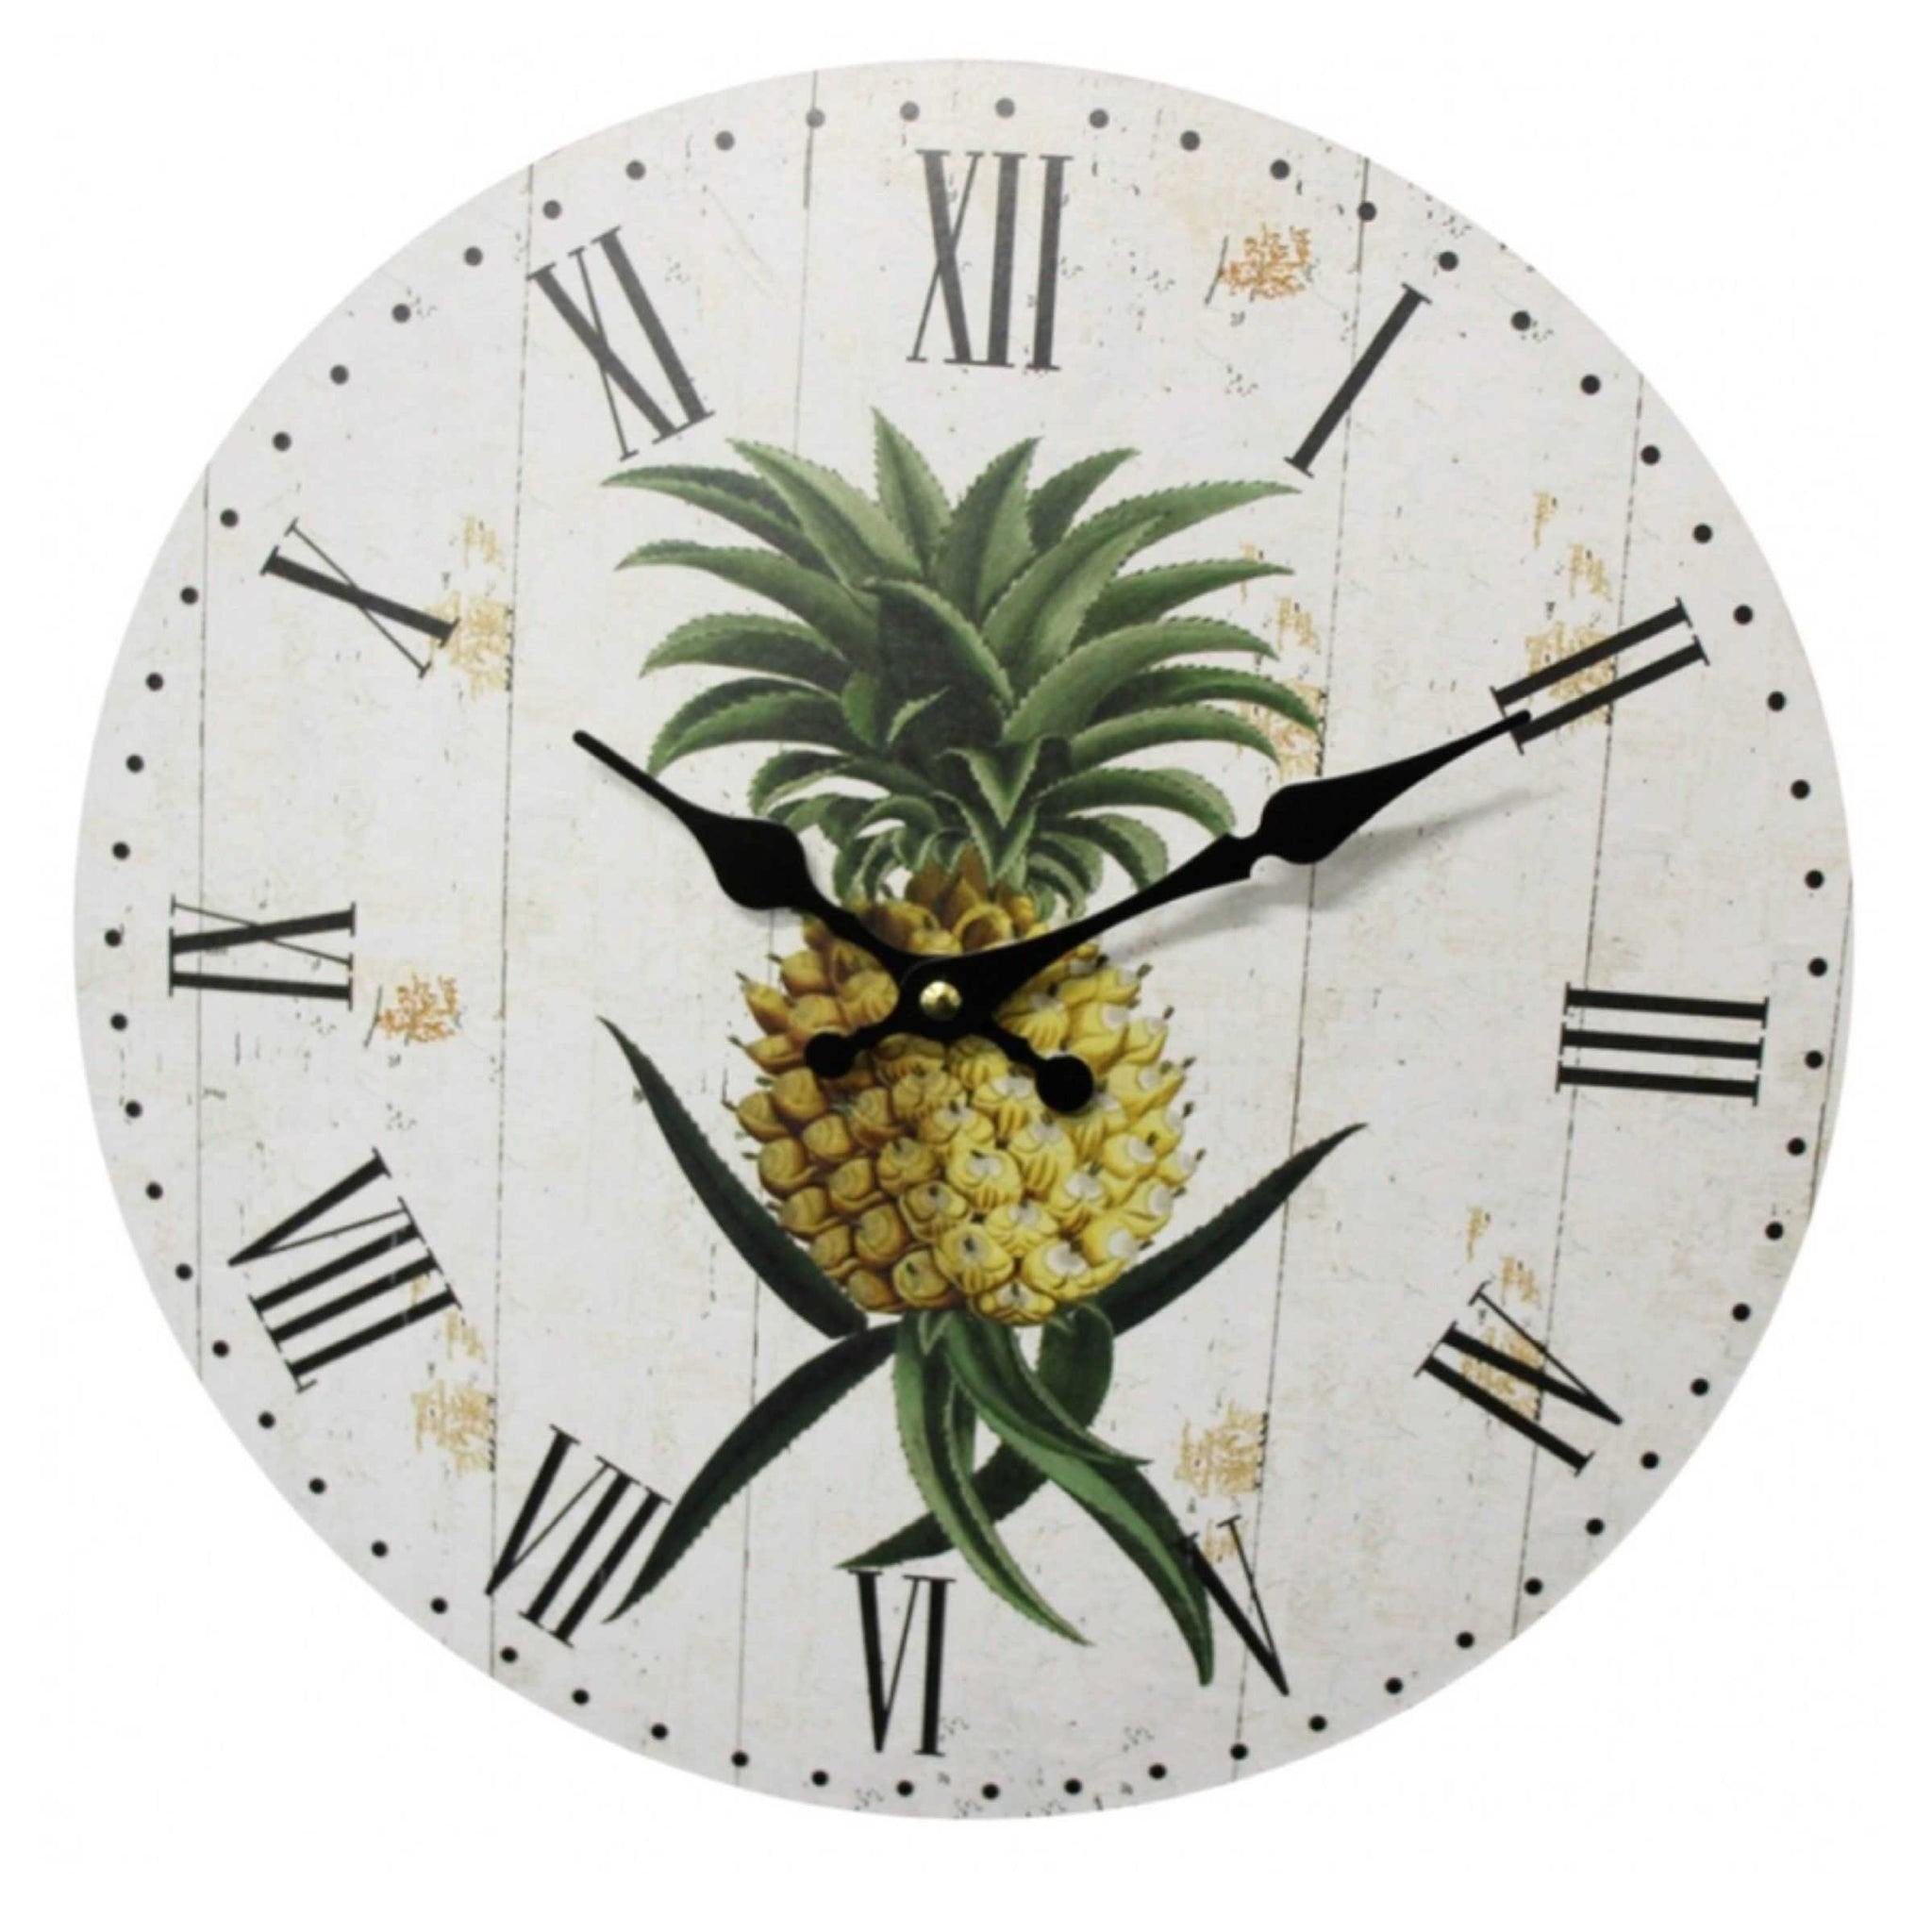 Clock Wall Rustic Timber Look Boards with Pineapple - The Renmy Store